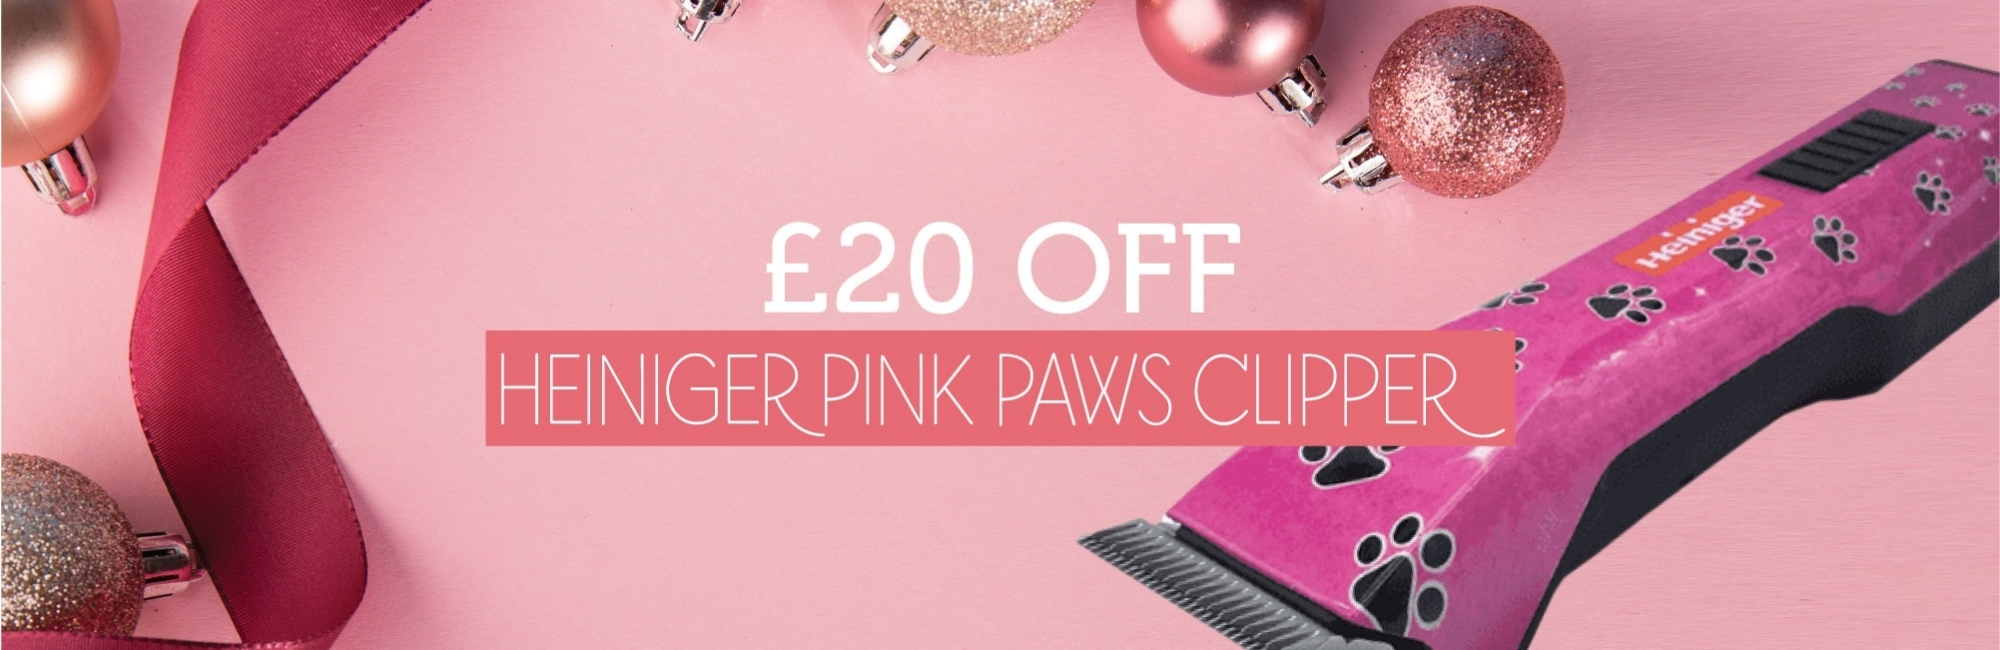 £20 Off Heiniger Pink Paws Clipper